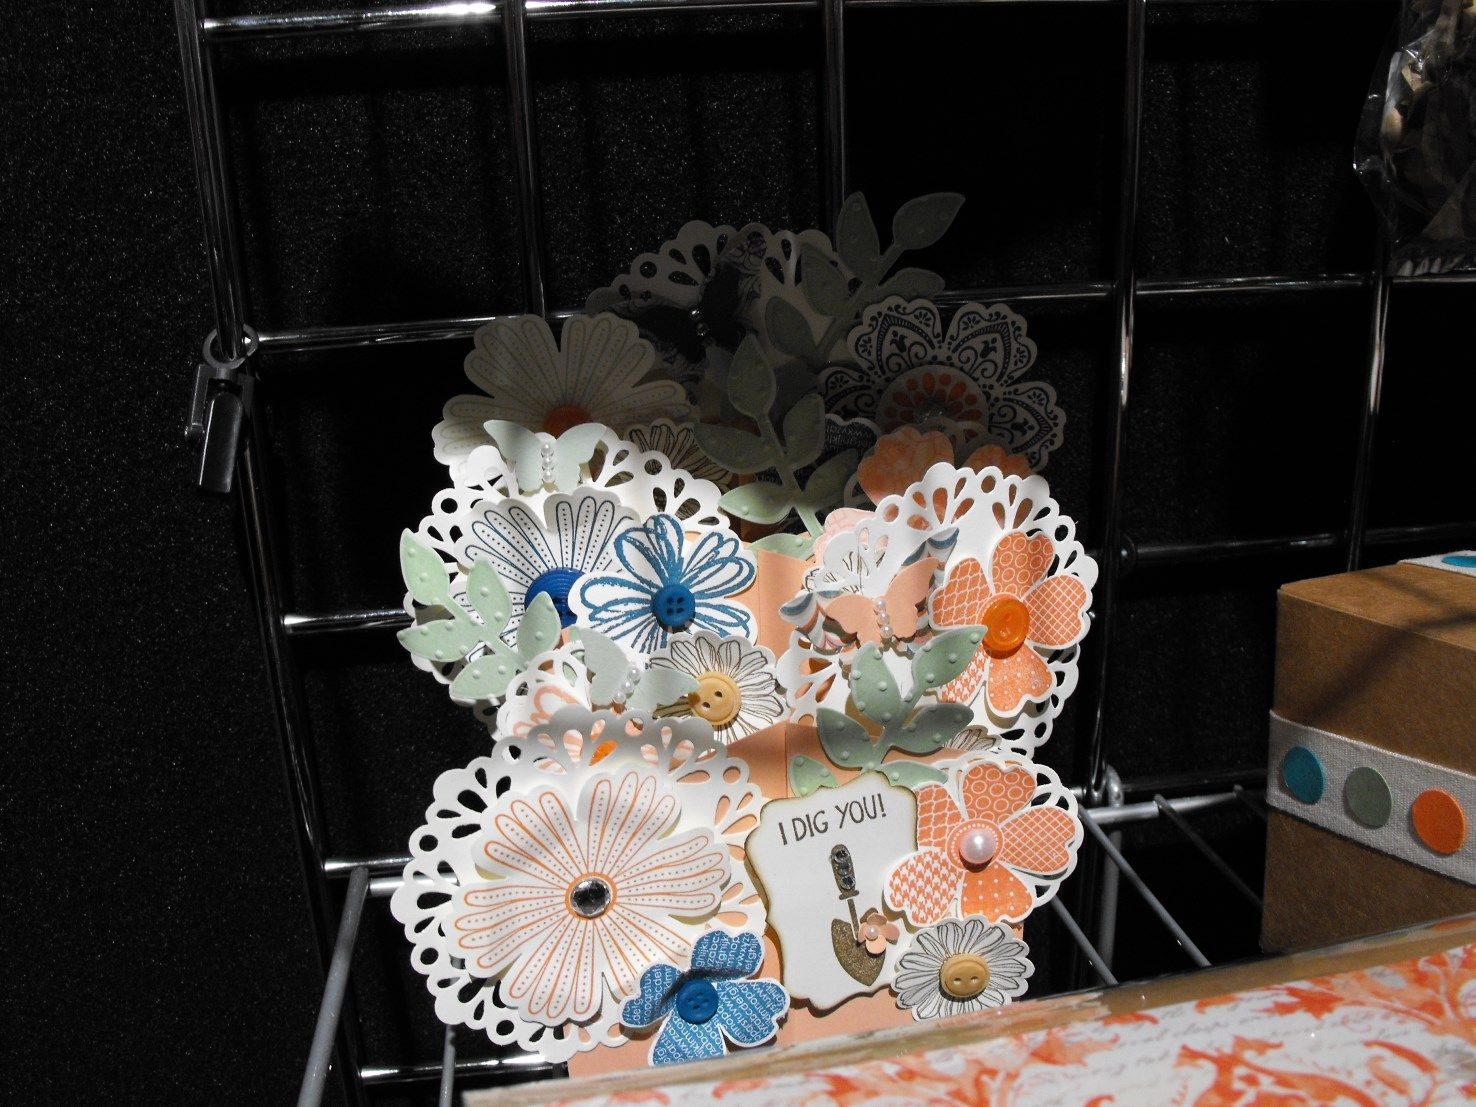 Stampin' Up! Convention 2013 Display Boards - Made by Julie Phillips